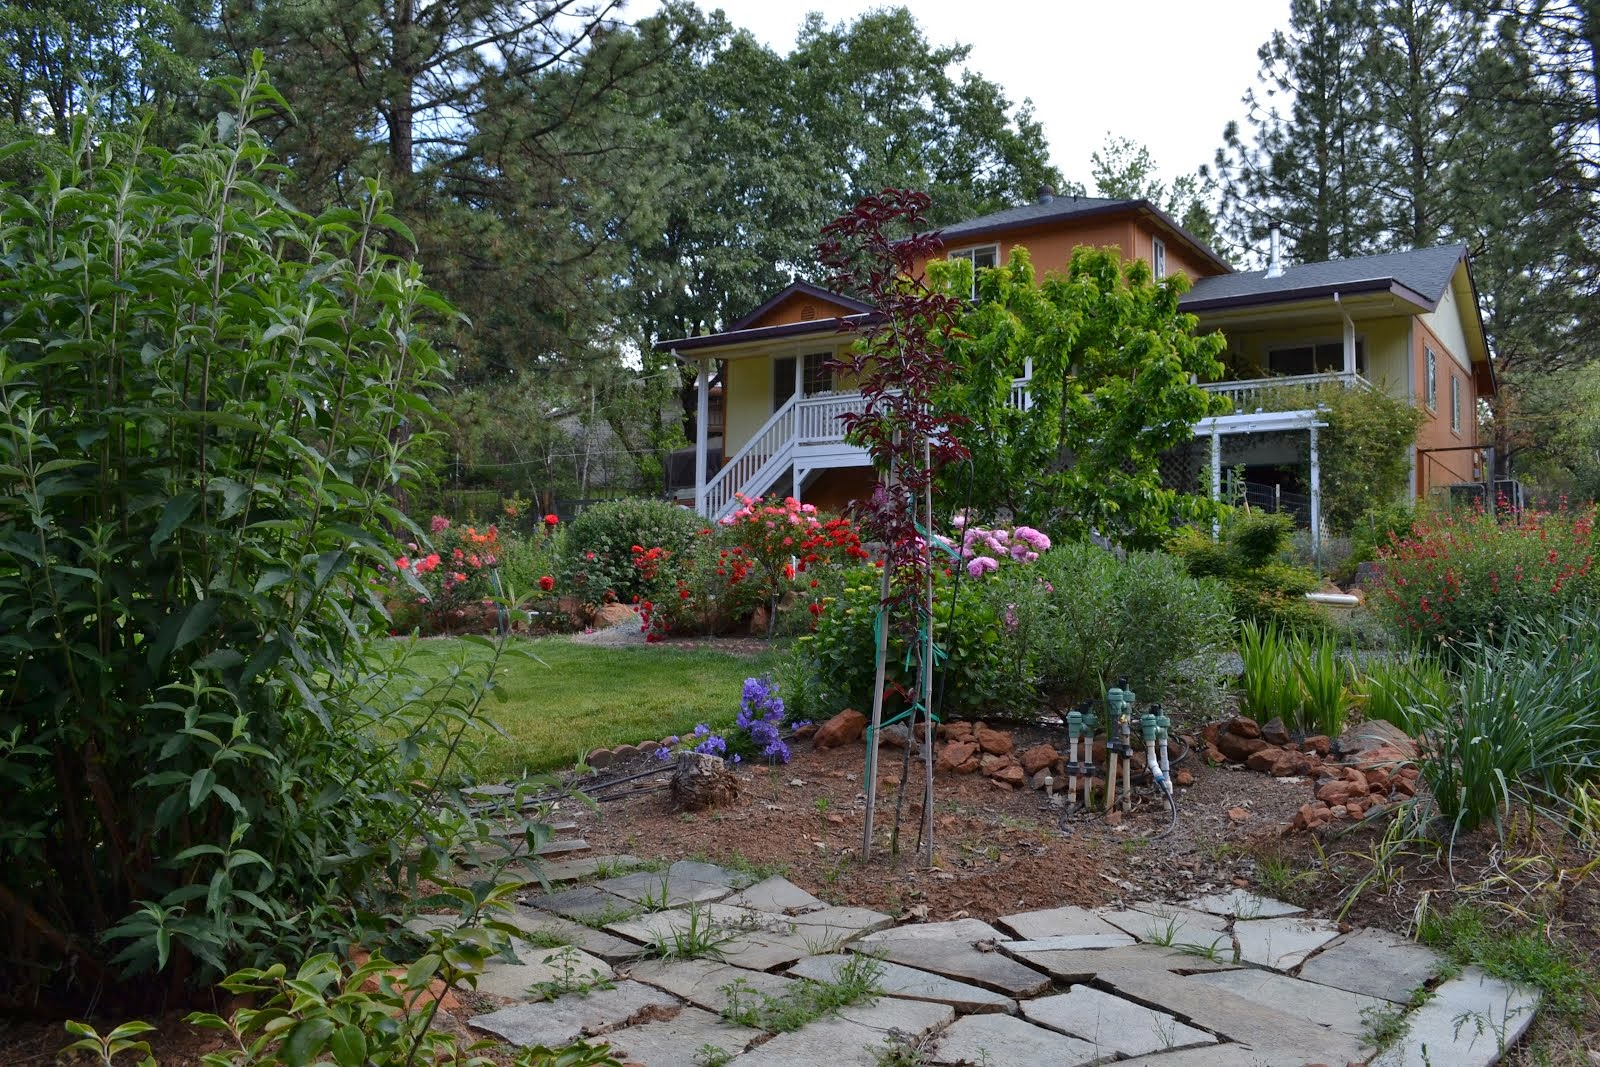 ALTA SIERRA HOME FOR SALE - $314,000 - GARDENER'S DREAM